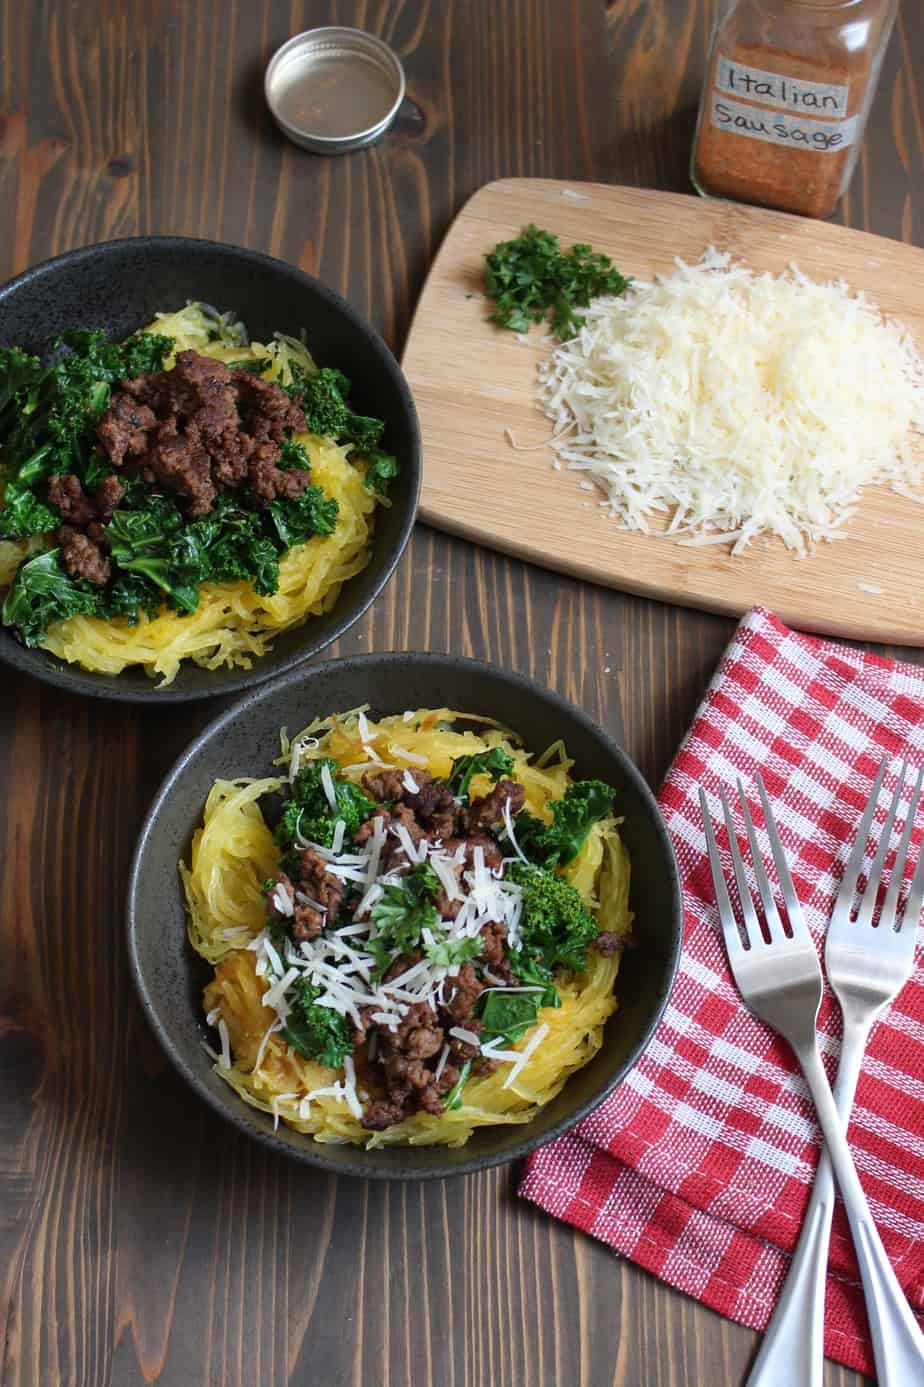 Easy Paleo Spaghetti Squash Bowl | Frugal Nutrition